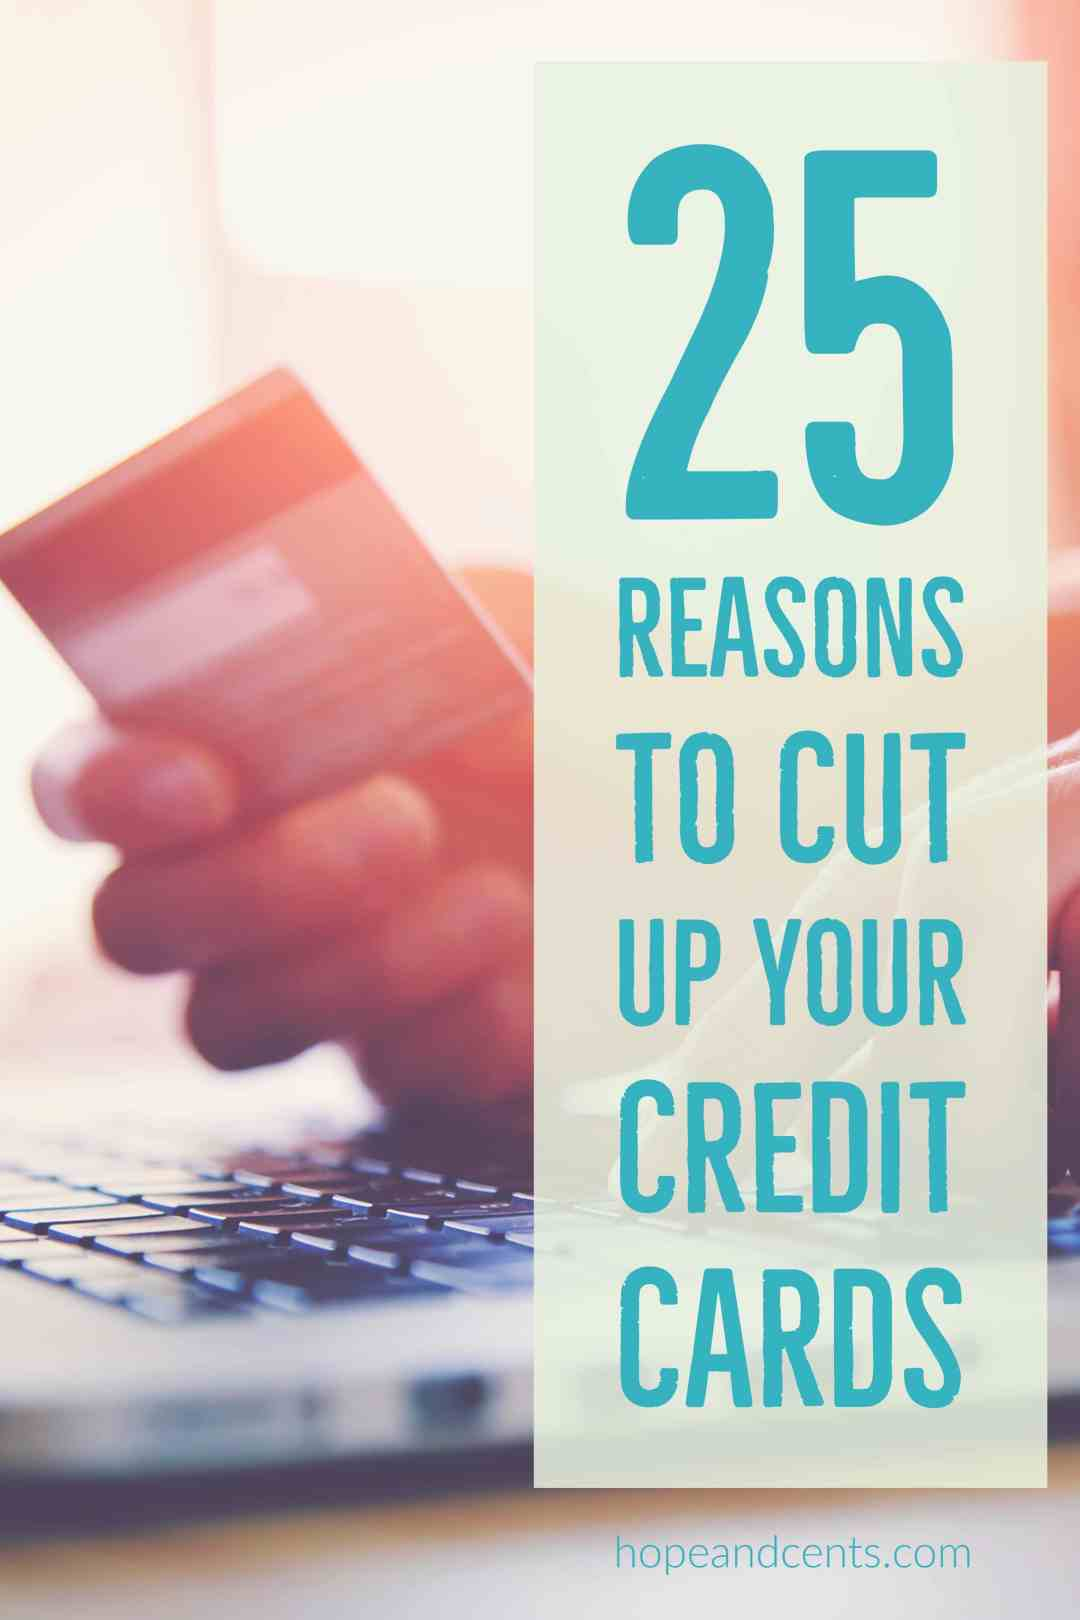 Making the decision to cut up your credit cards can feel scary if you have spent years relying on them. But there is much to gain by ditching them and living a cash-only lifestyle.